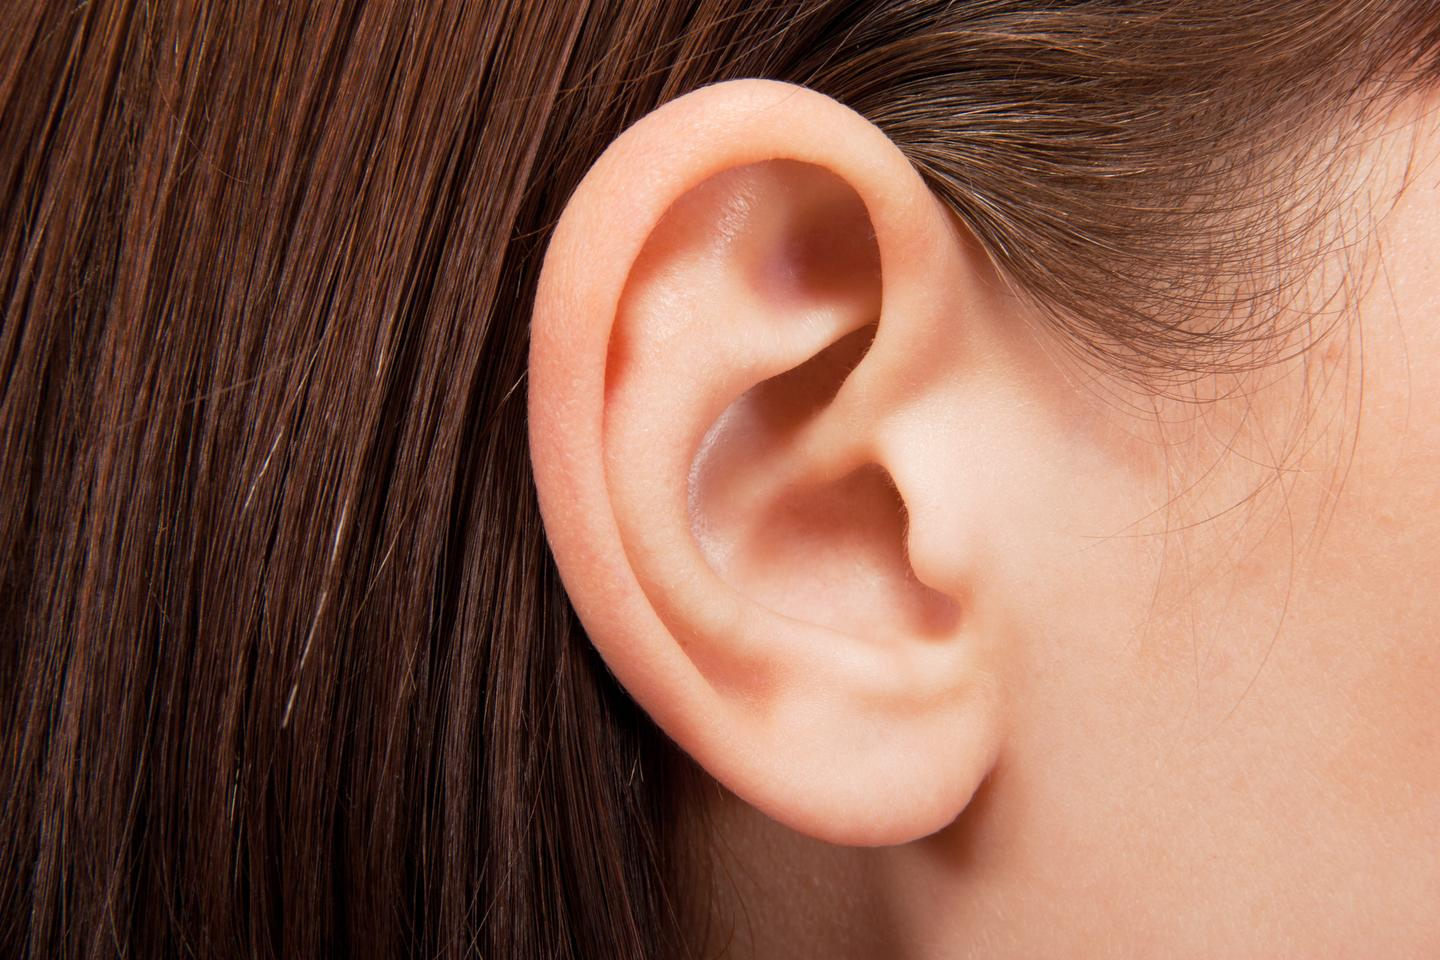 Damaged or deformed ears could be rebuilt using the patient's own fat (Photo: Shutterstock)